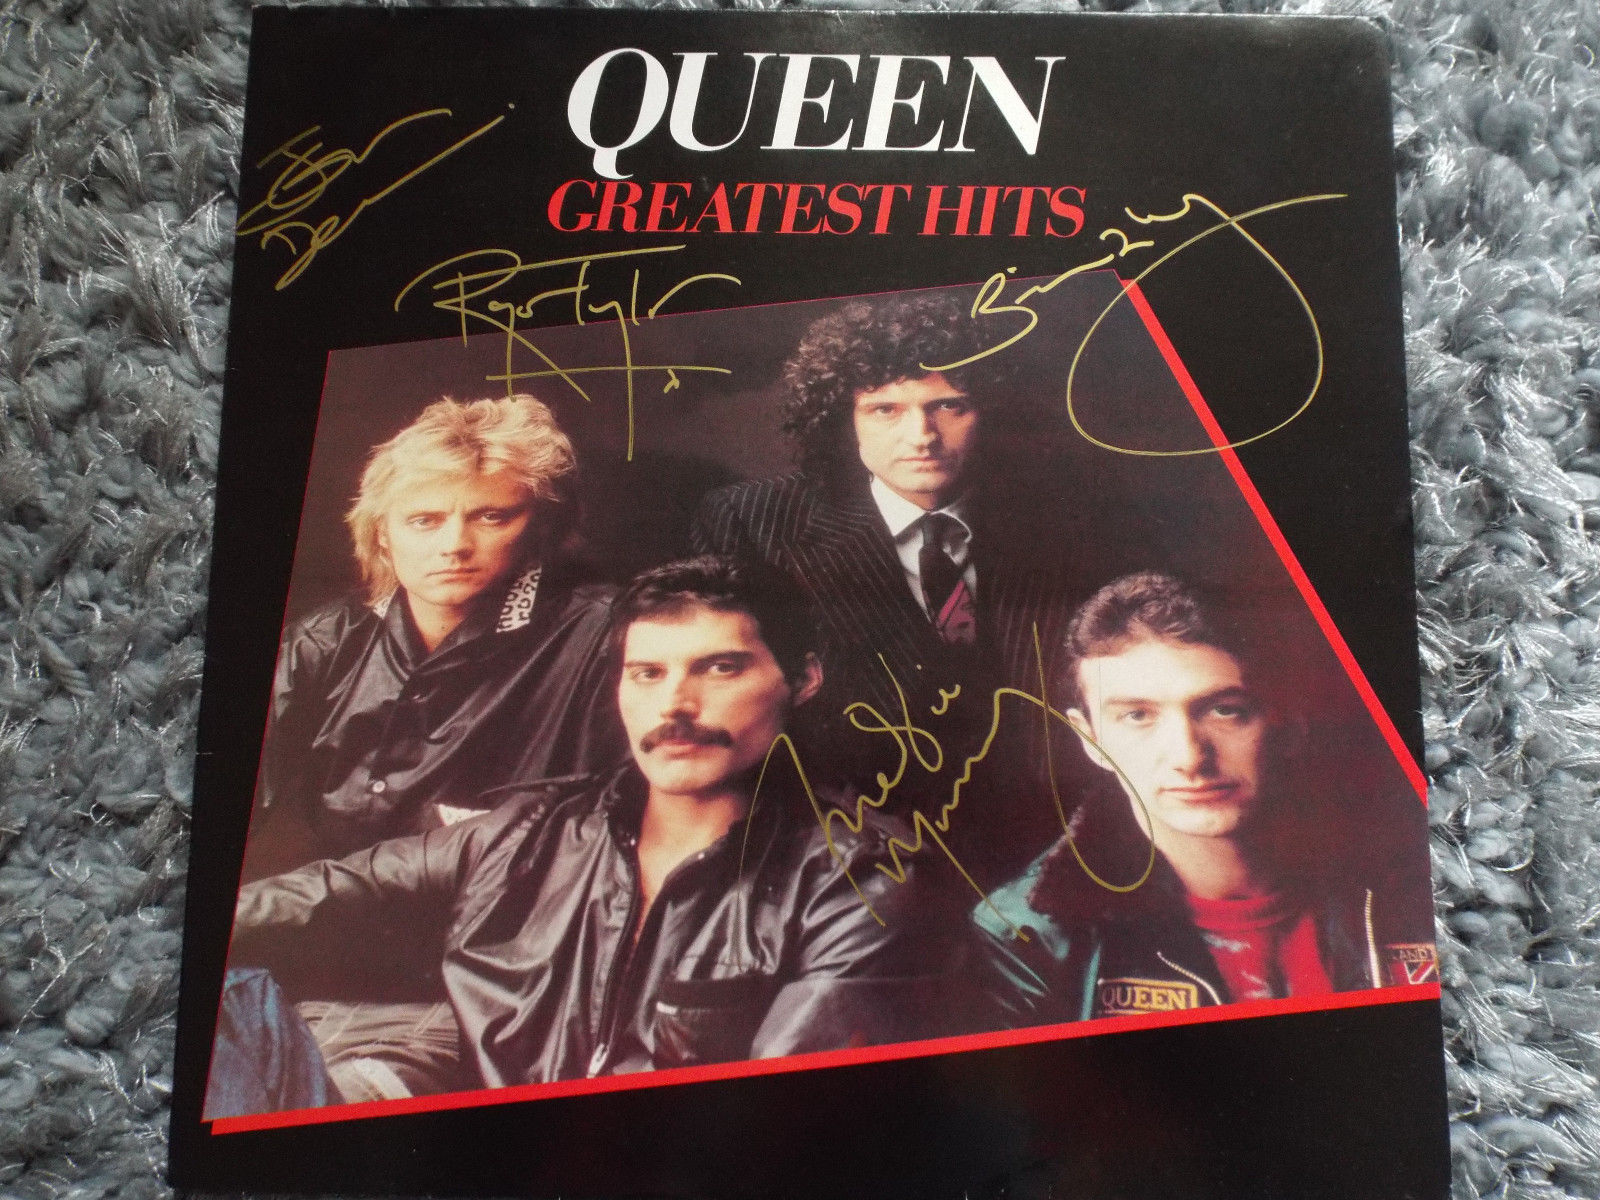 Queen, Greatest Hits vinyl, signed by band including Freddie Mercury